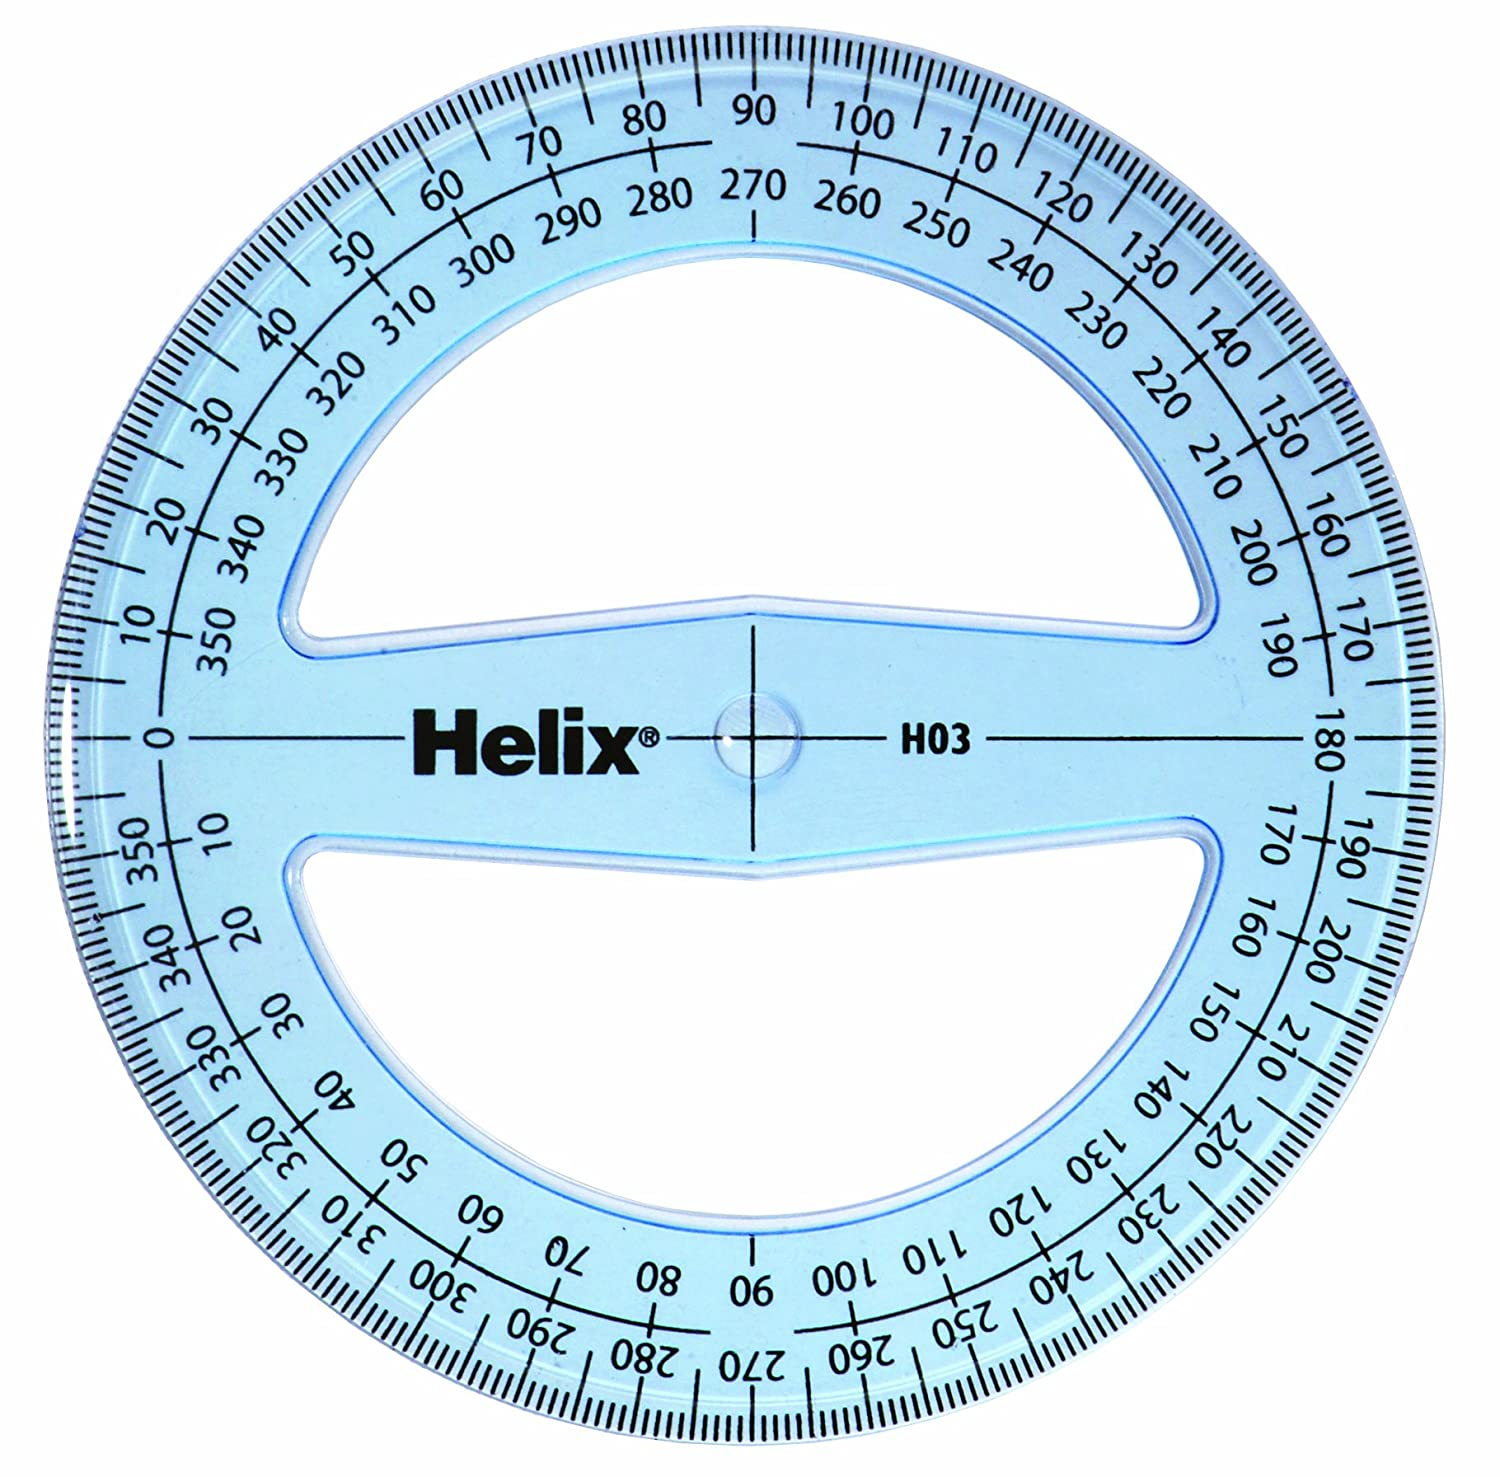 worksheet Protractor Image helix 10cm 360 degree protractor pack of 50 h03040 amazon co uk office products